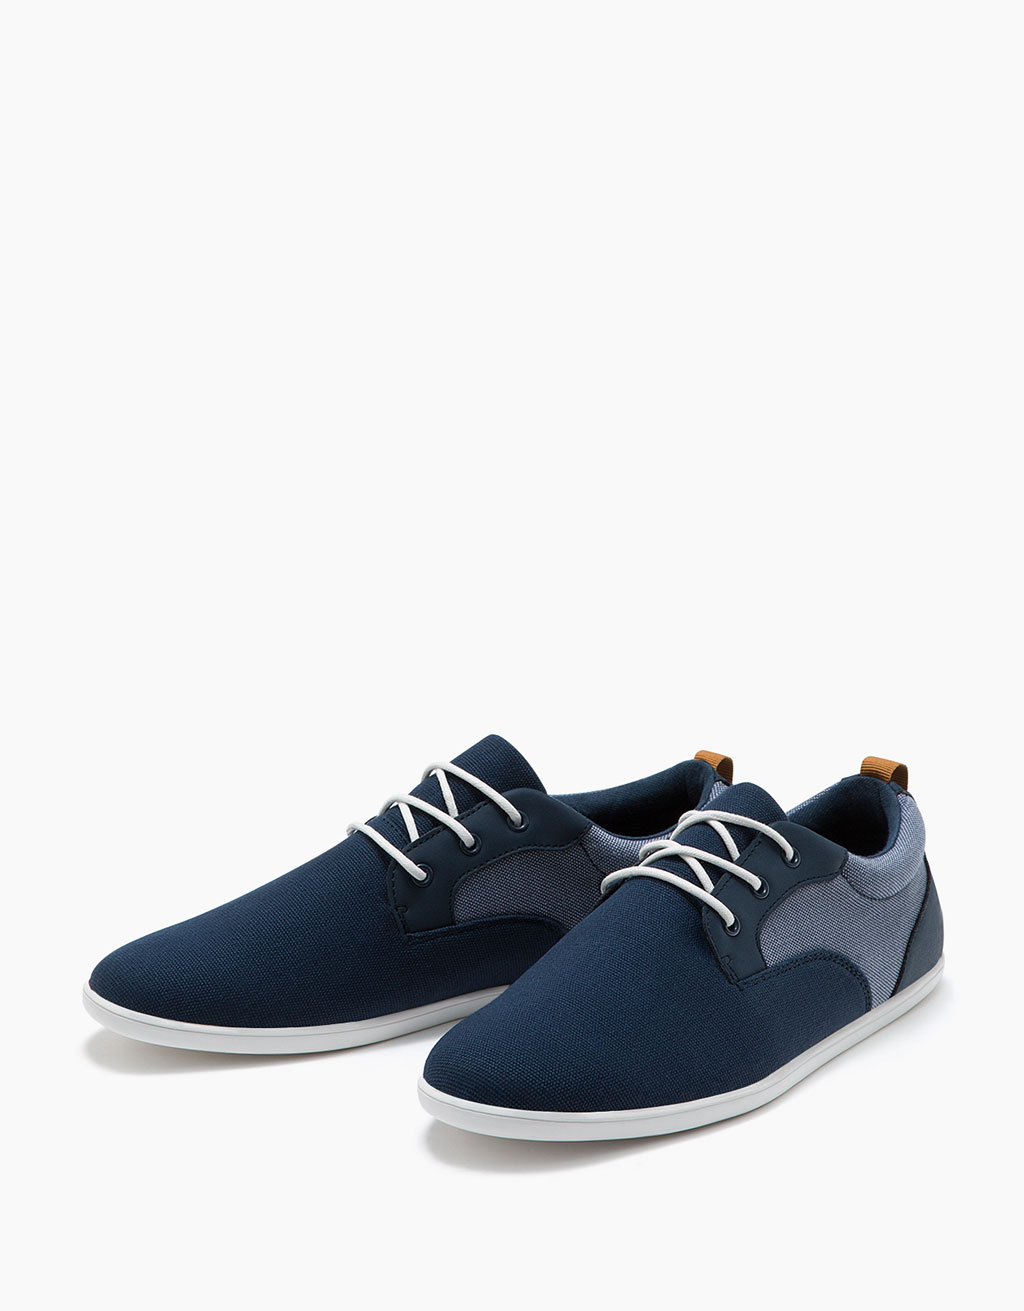 Men's combined lace-up shoes